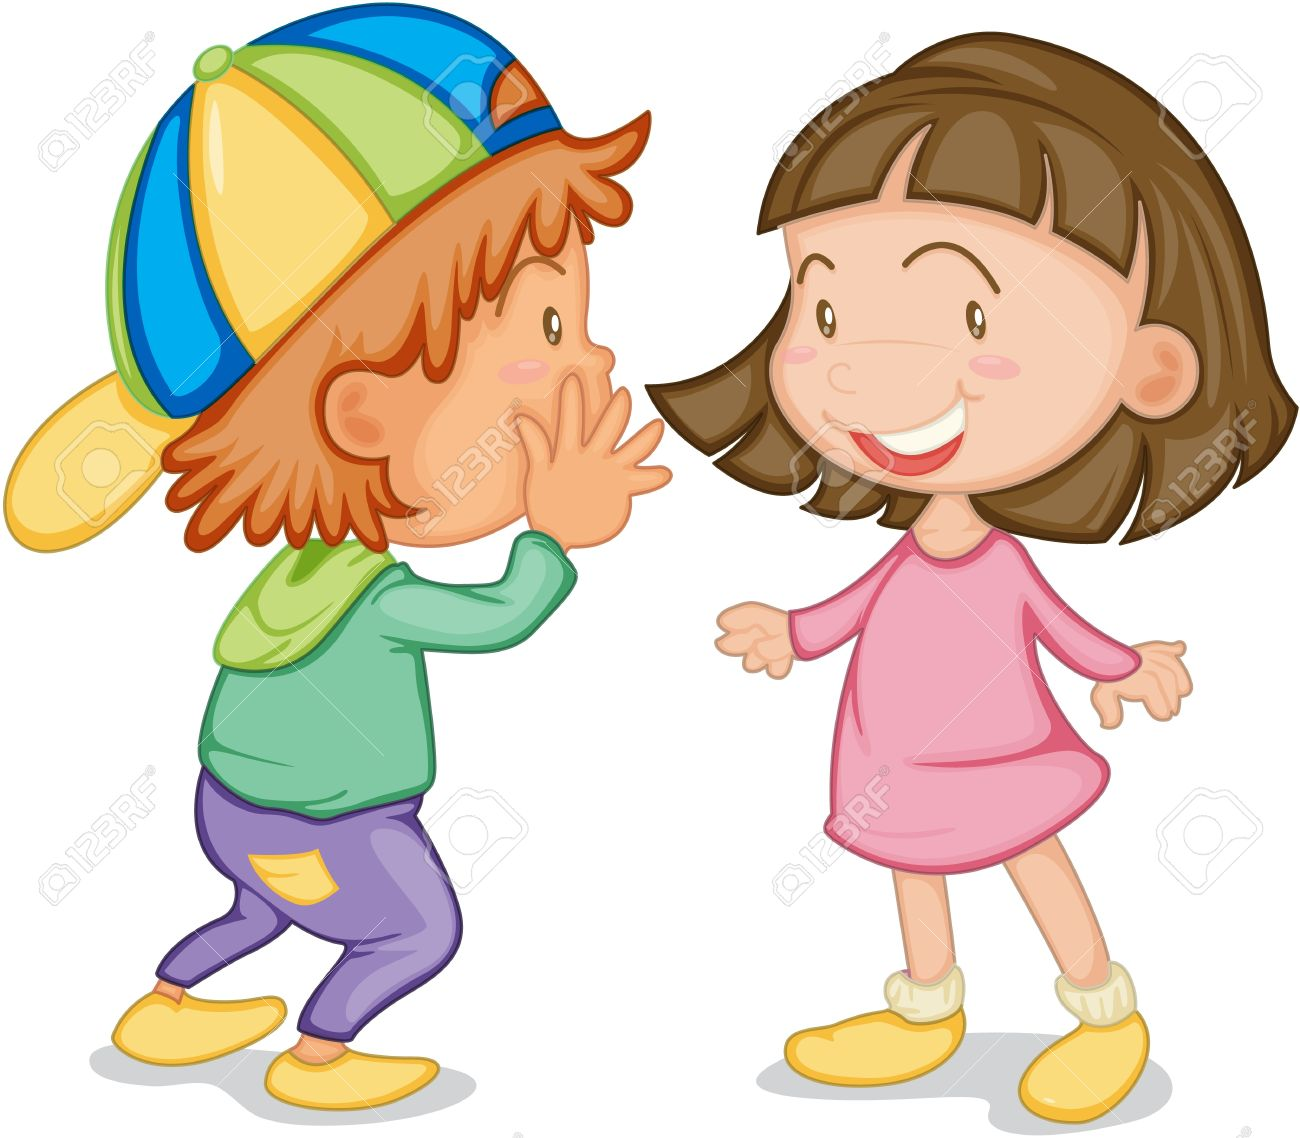 Two children talking clipart 8 » Clipart Station.